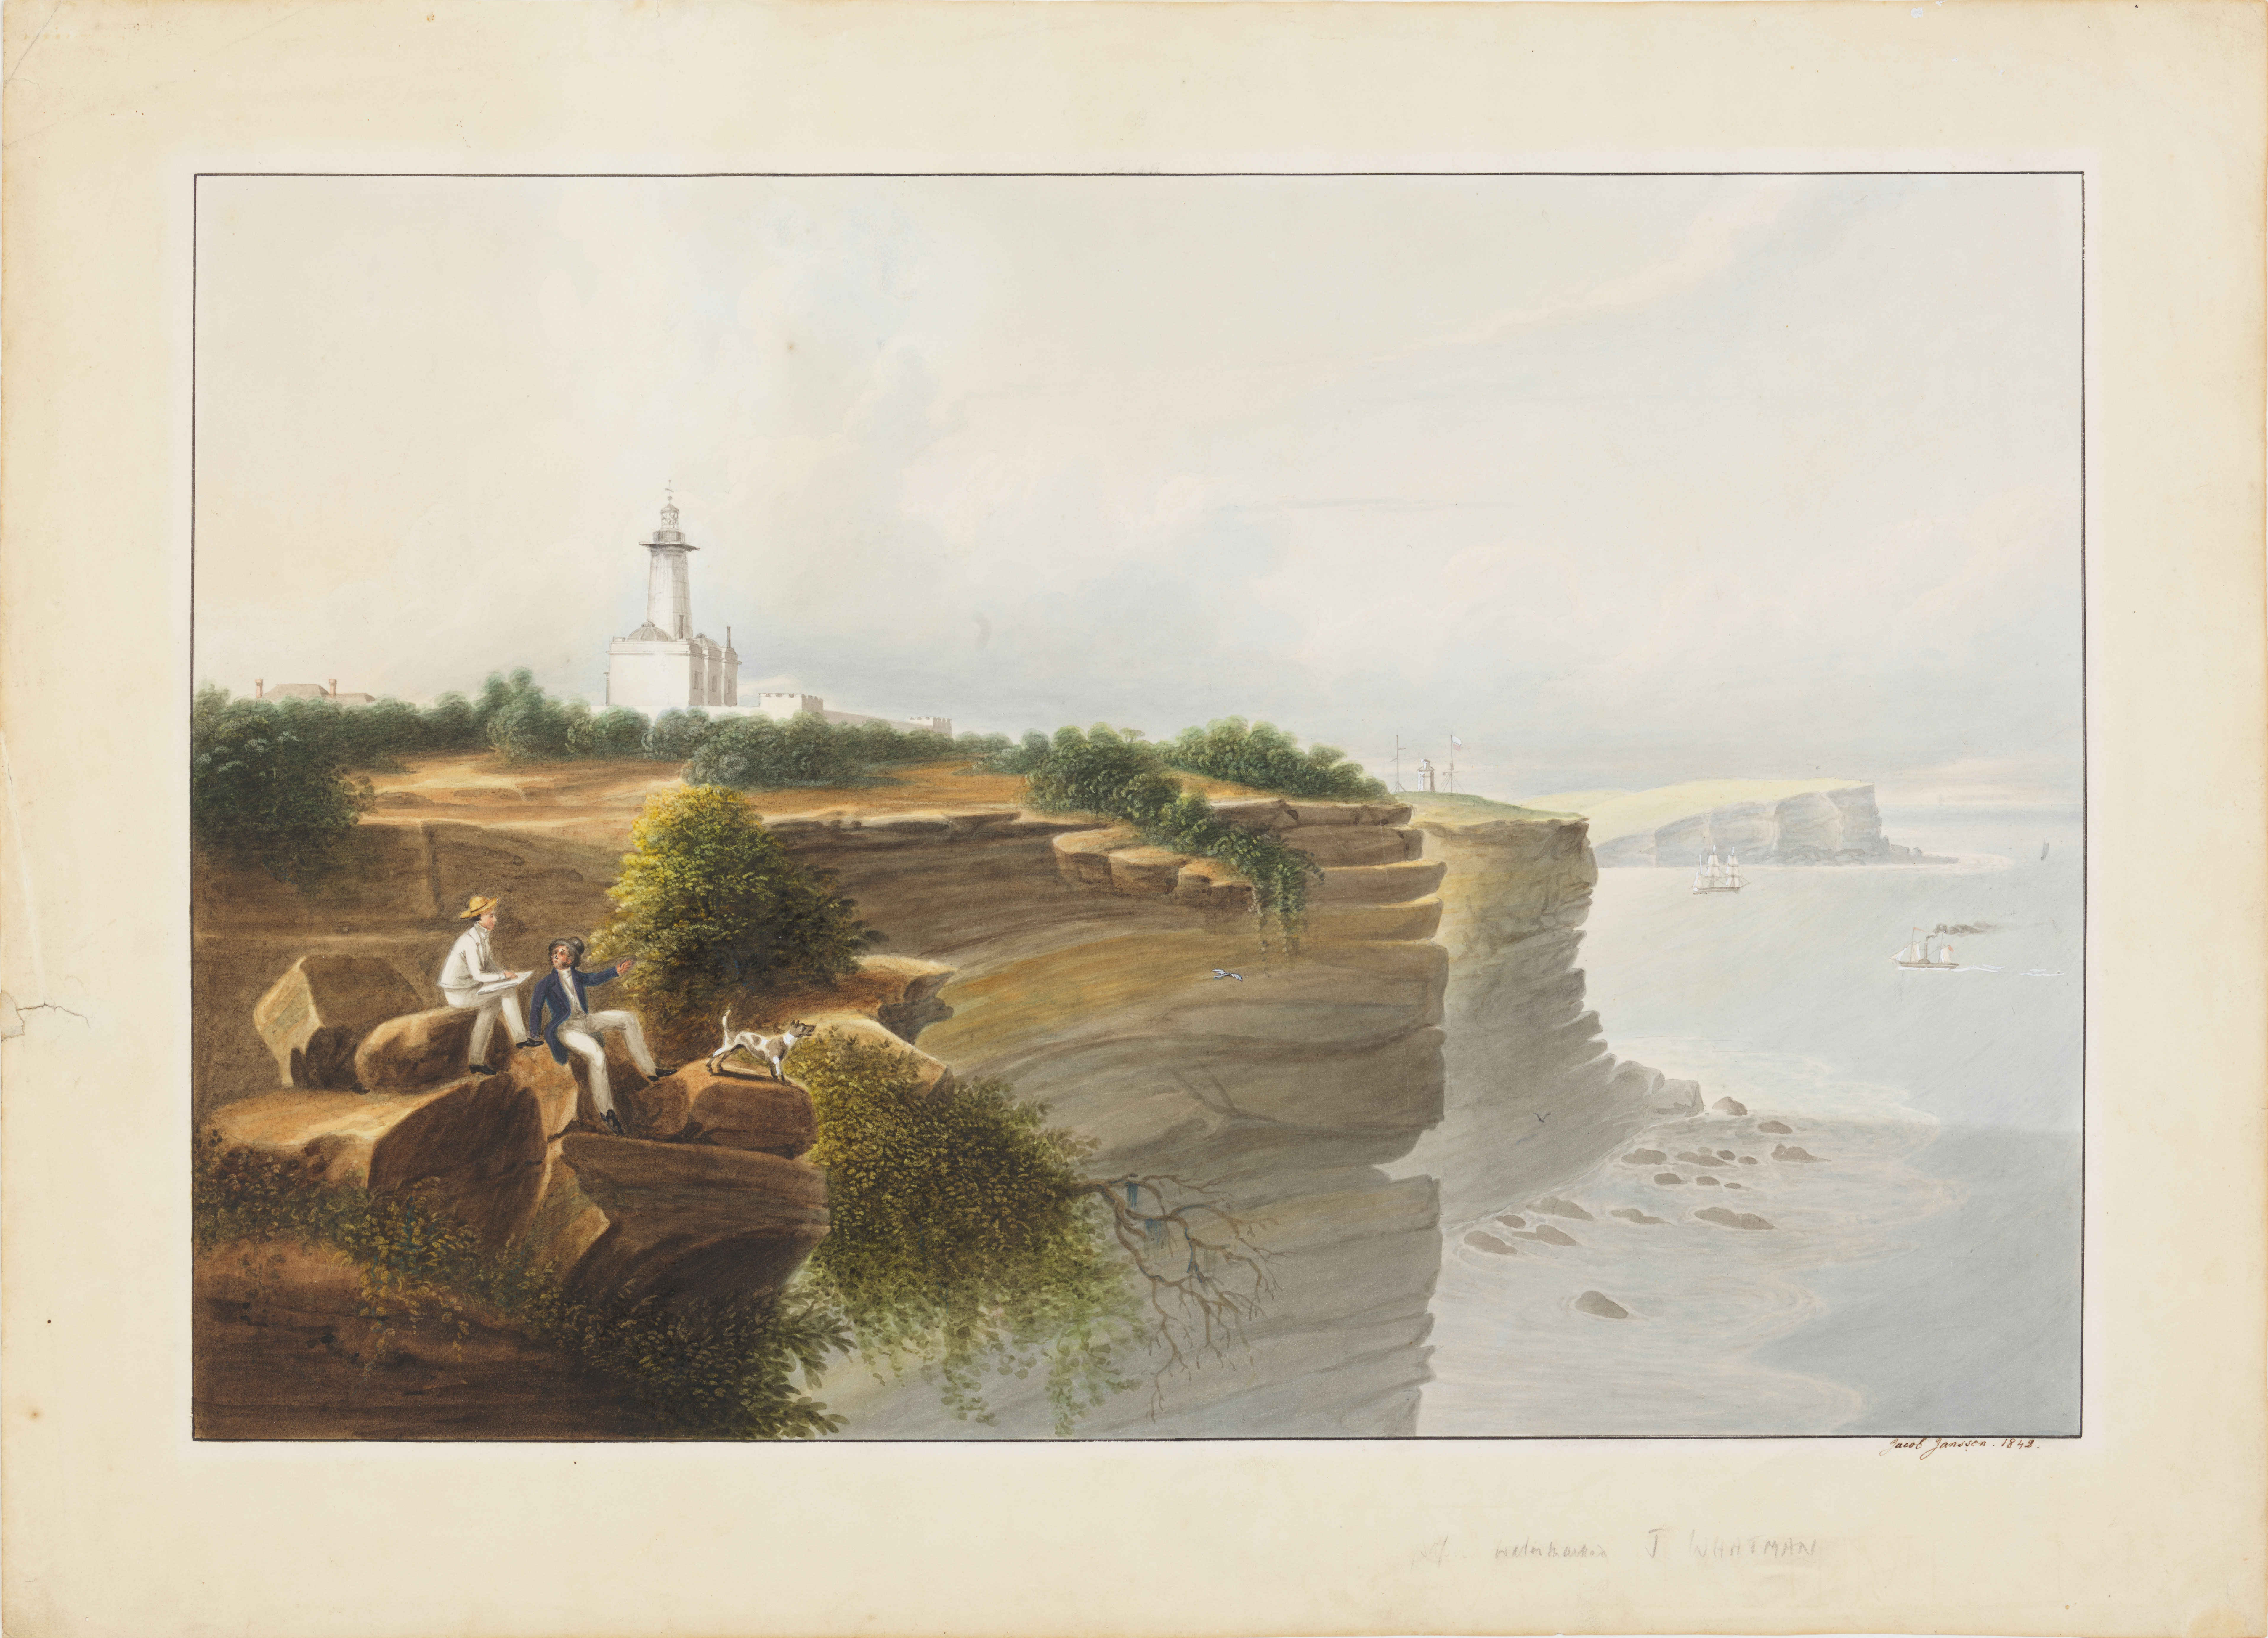 A painting of a cliff by the sea, with two men and a dog in the foreground and a lighthouse in the middle distance.